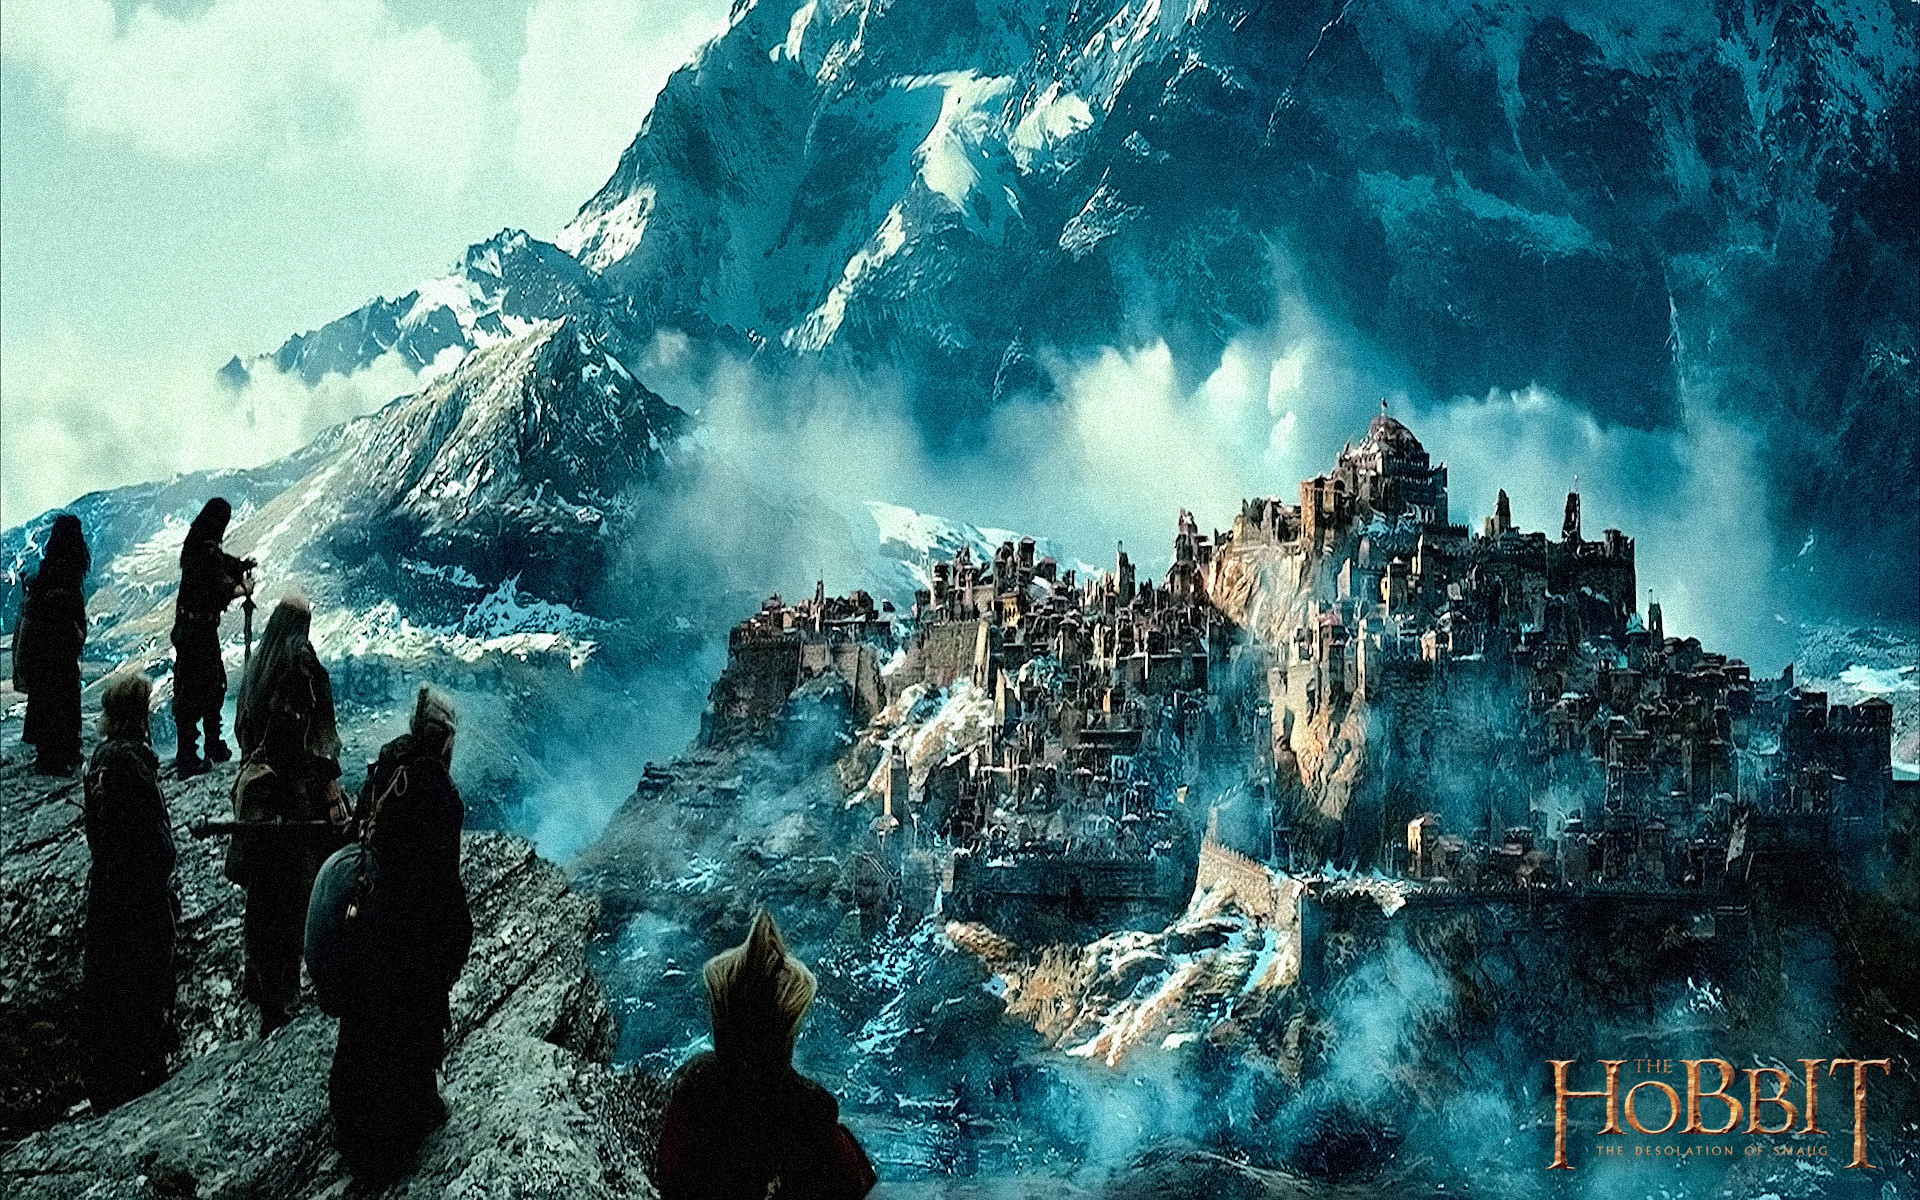 The-Hobbit-The-Desolation-of-Smaug-wallpapers-1920×1200-